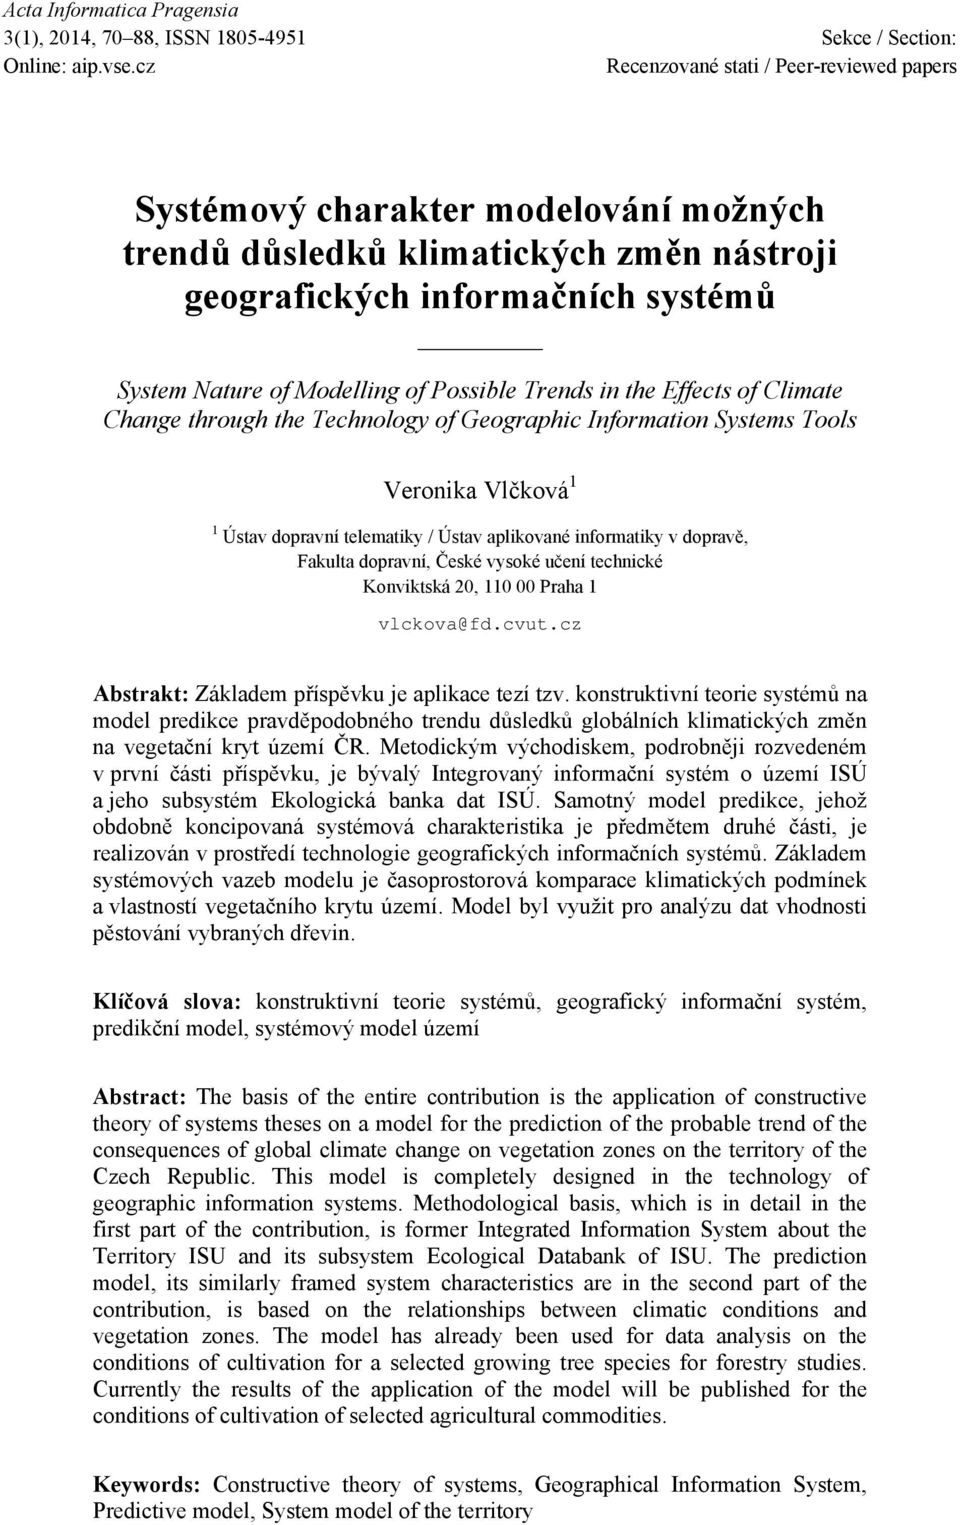 Trends in the Effects of Climate Change through the Technology of Geographic Information Systems Tools Veronika Vlčková 1 1 Ústav dopravní telematiky / Ústav aplikované informatiky v dopravě, Fakulta